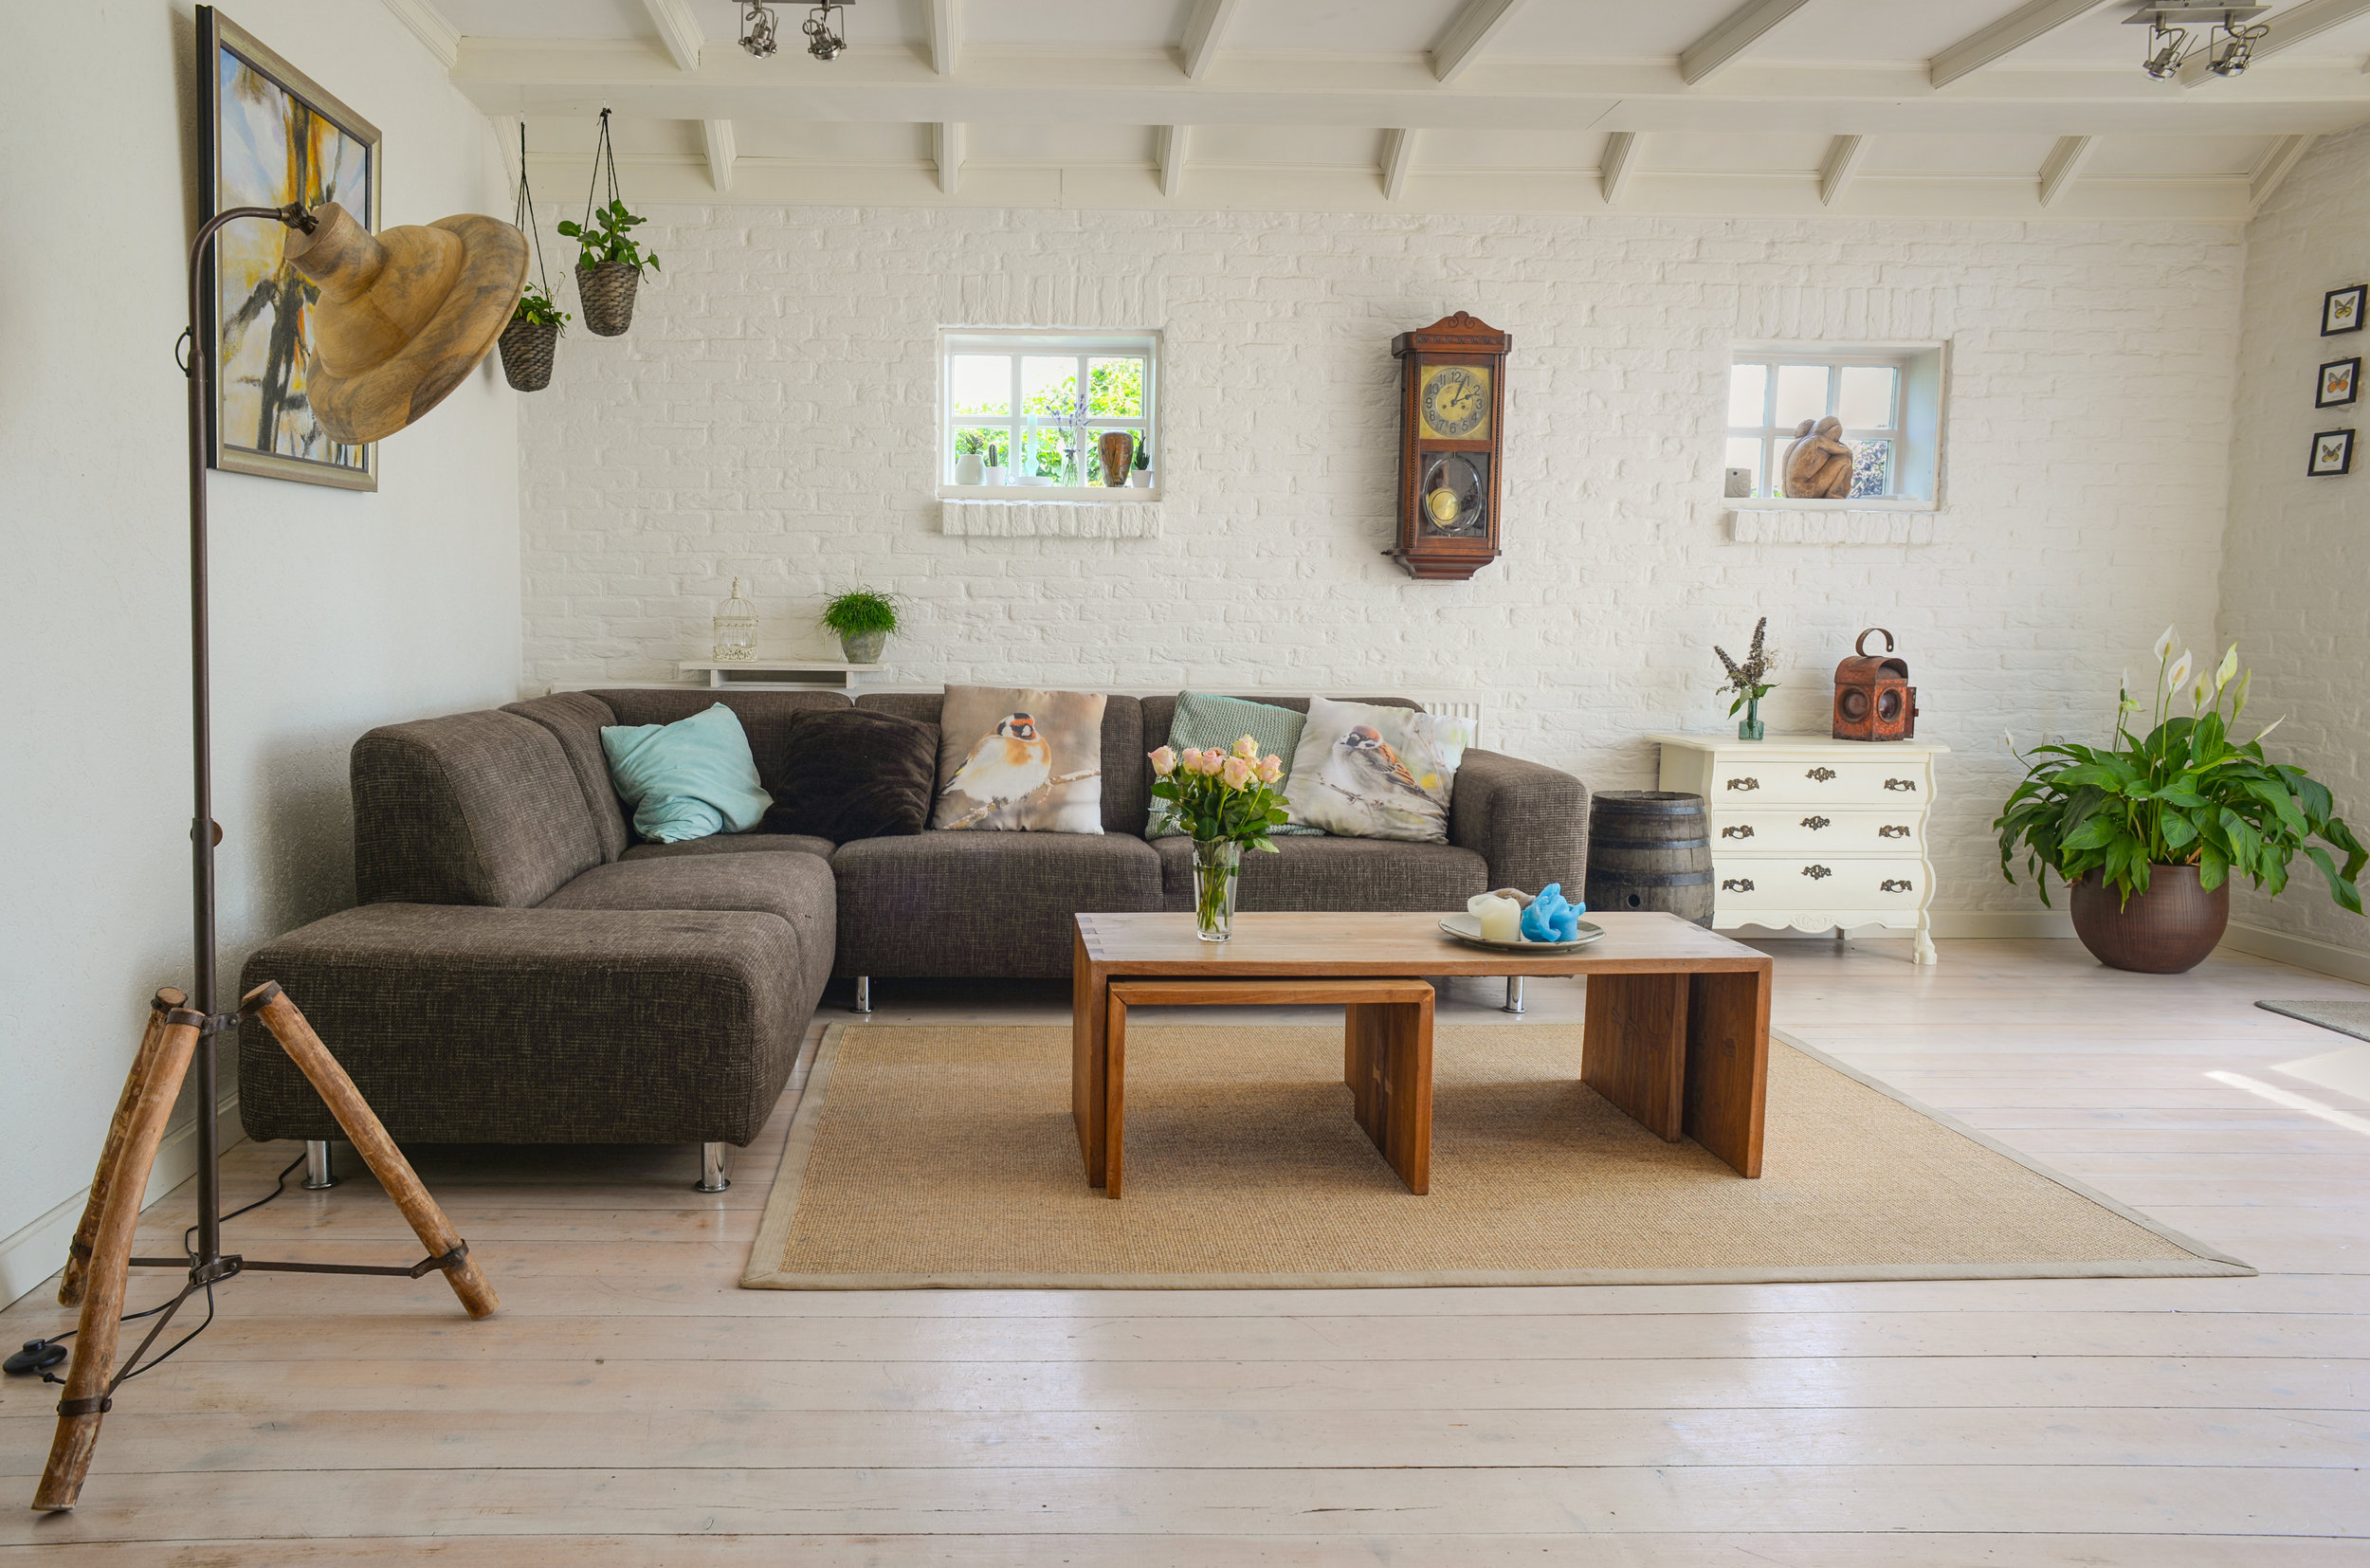 living-room-couch-interior-room-584399.jpeg